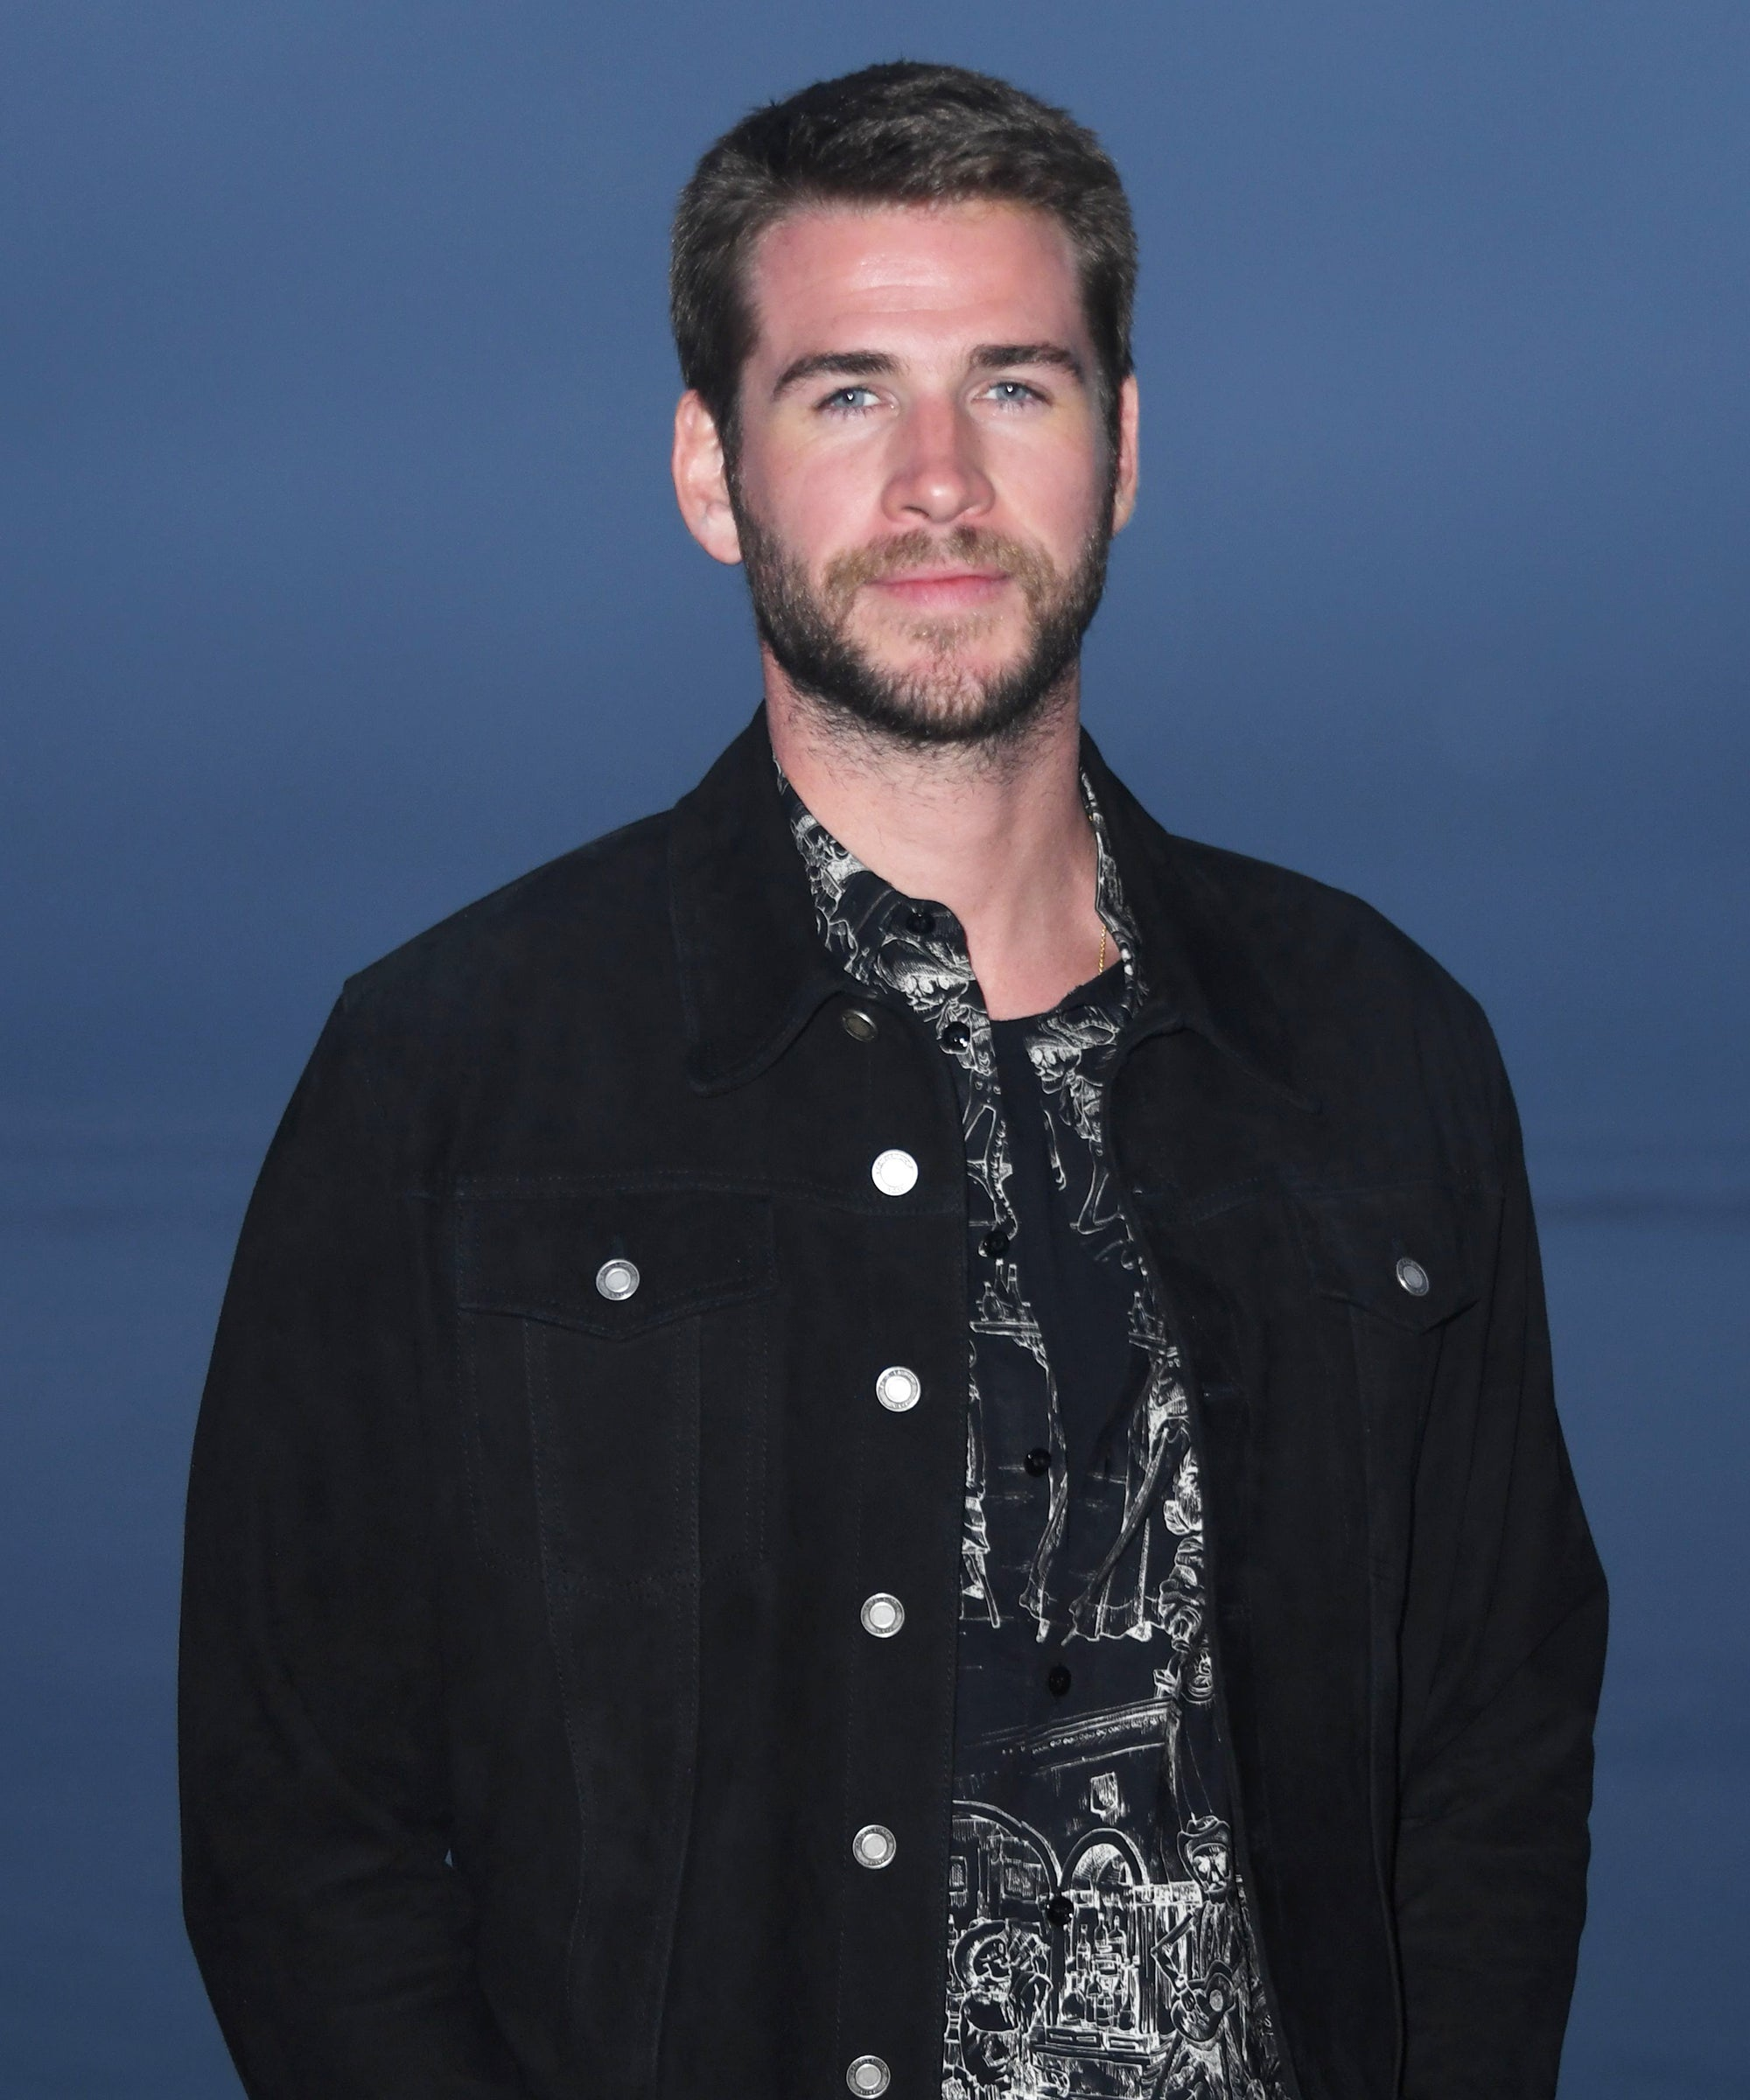 Liam Hemsworth Went On A Very Public Date In New York With Maddison Brown